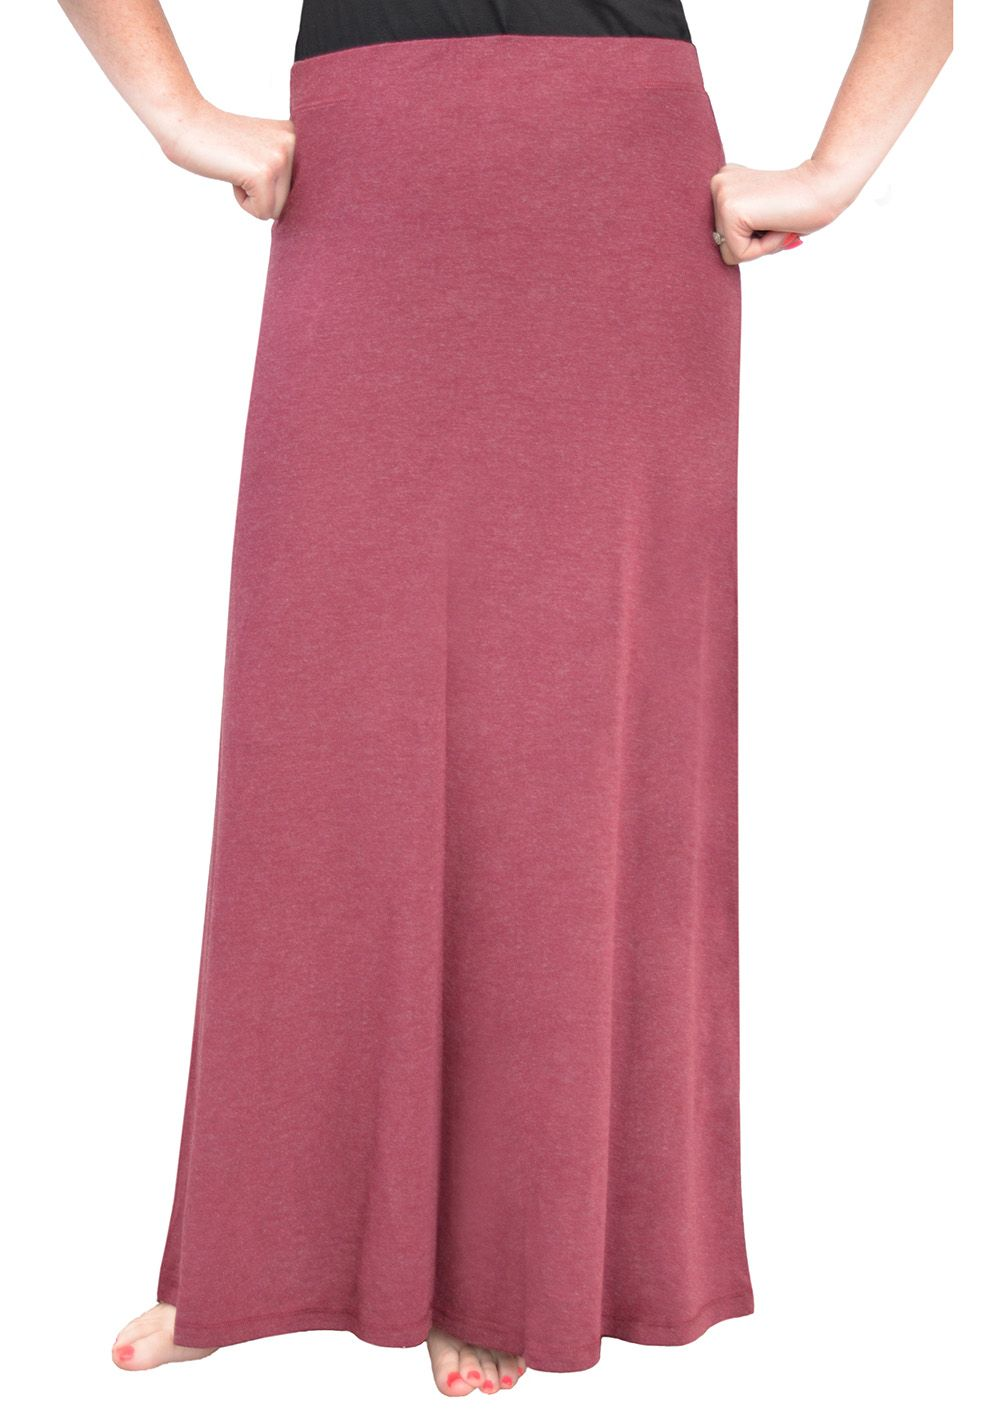 Directional Yet Demure Clothing For The Cool Modern Woman: Check Out This Modest Maxi Skirt For Women! Comfortable